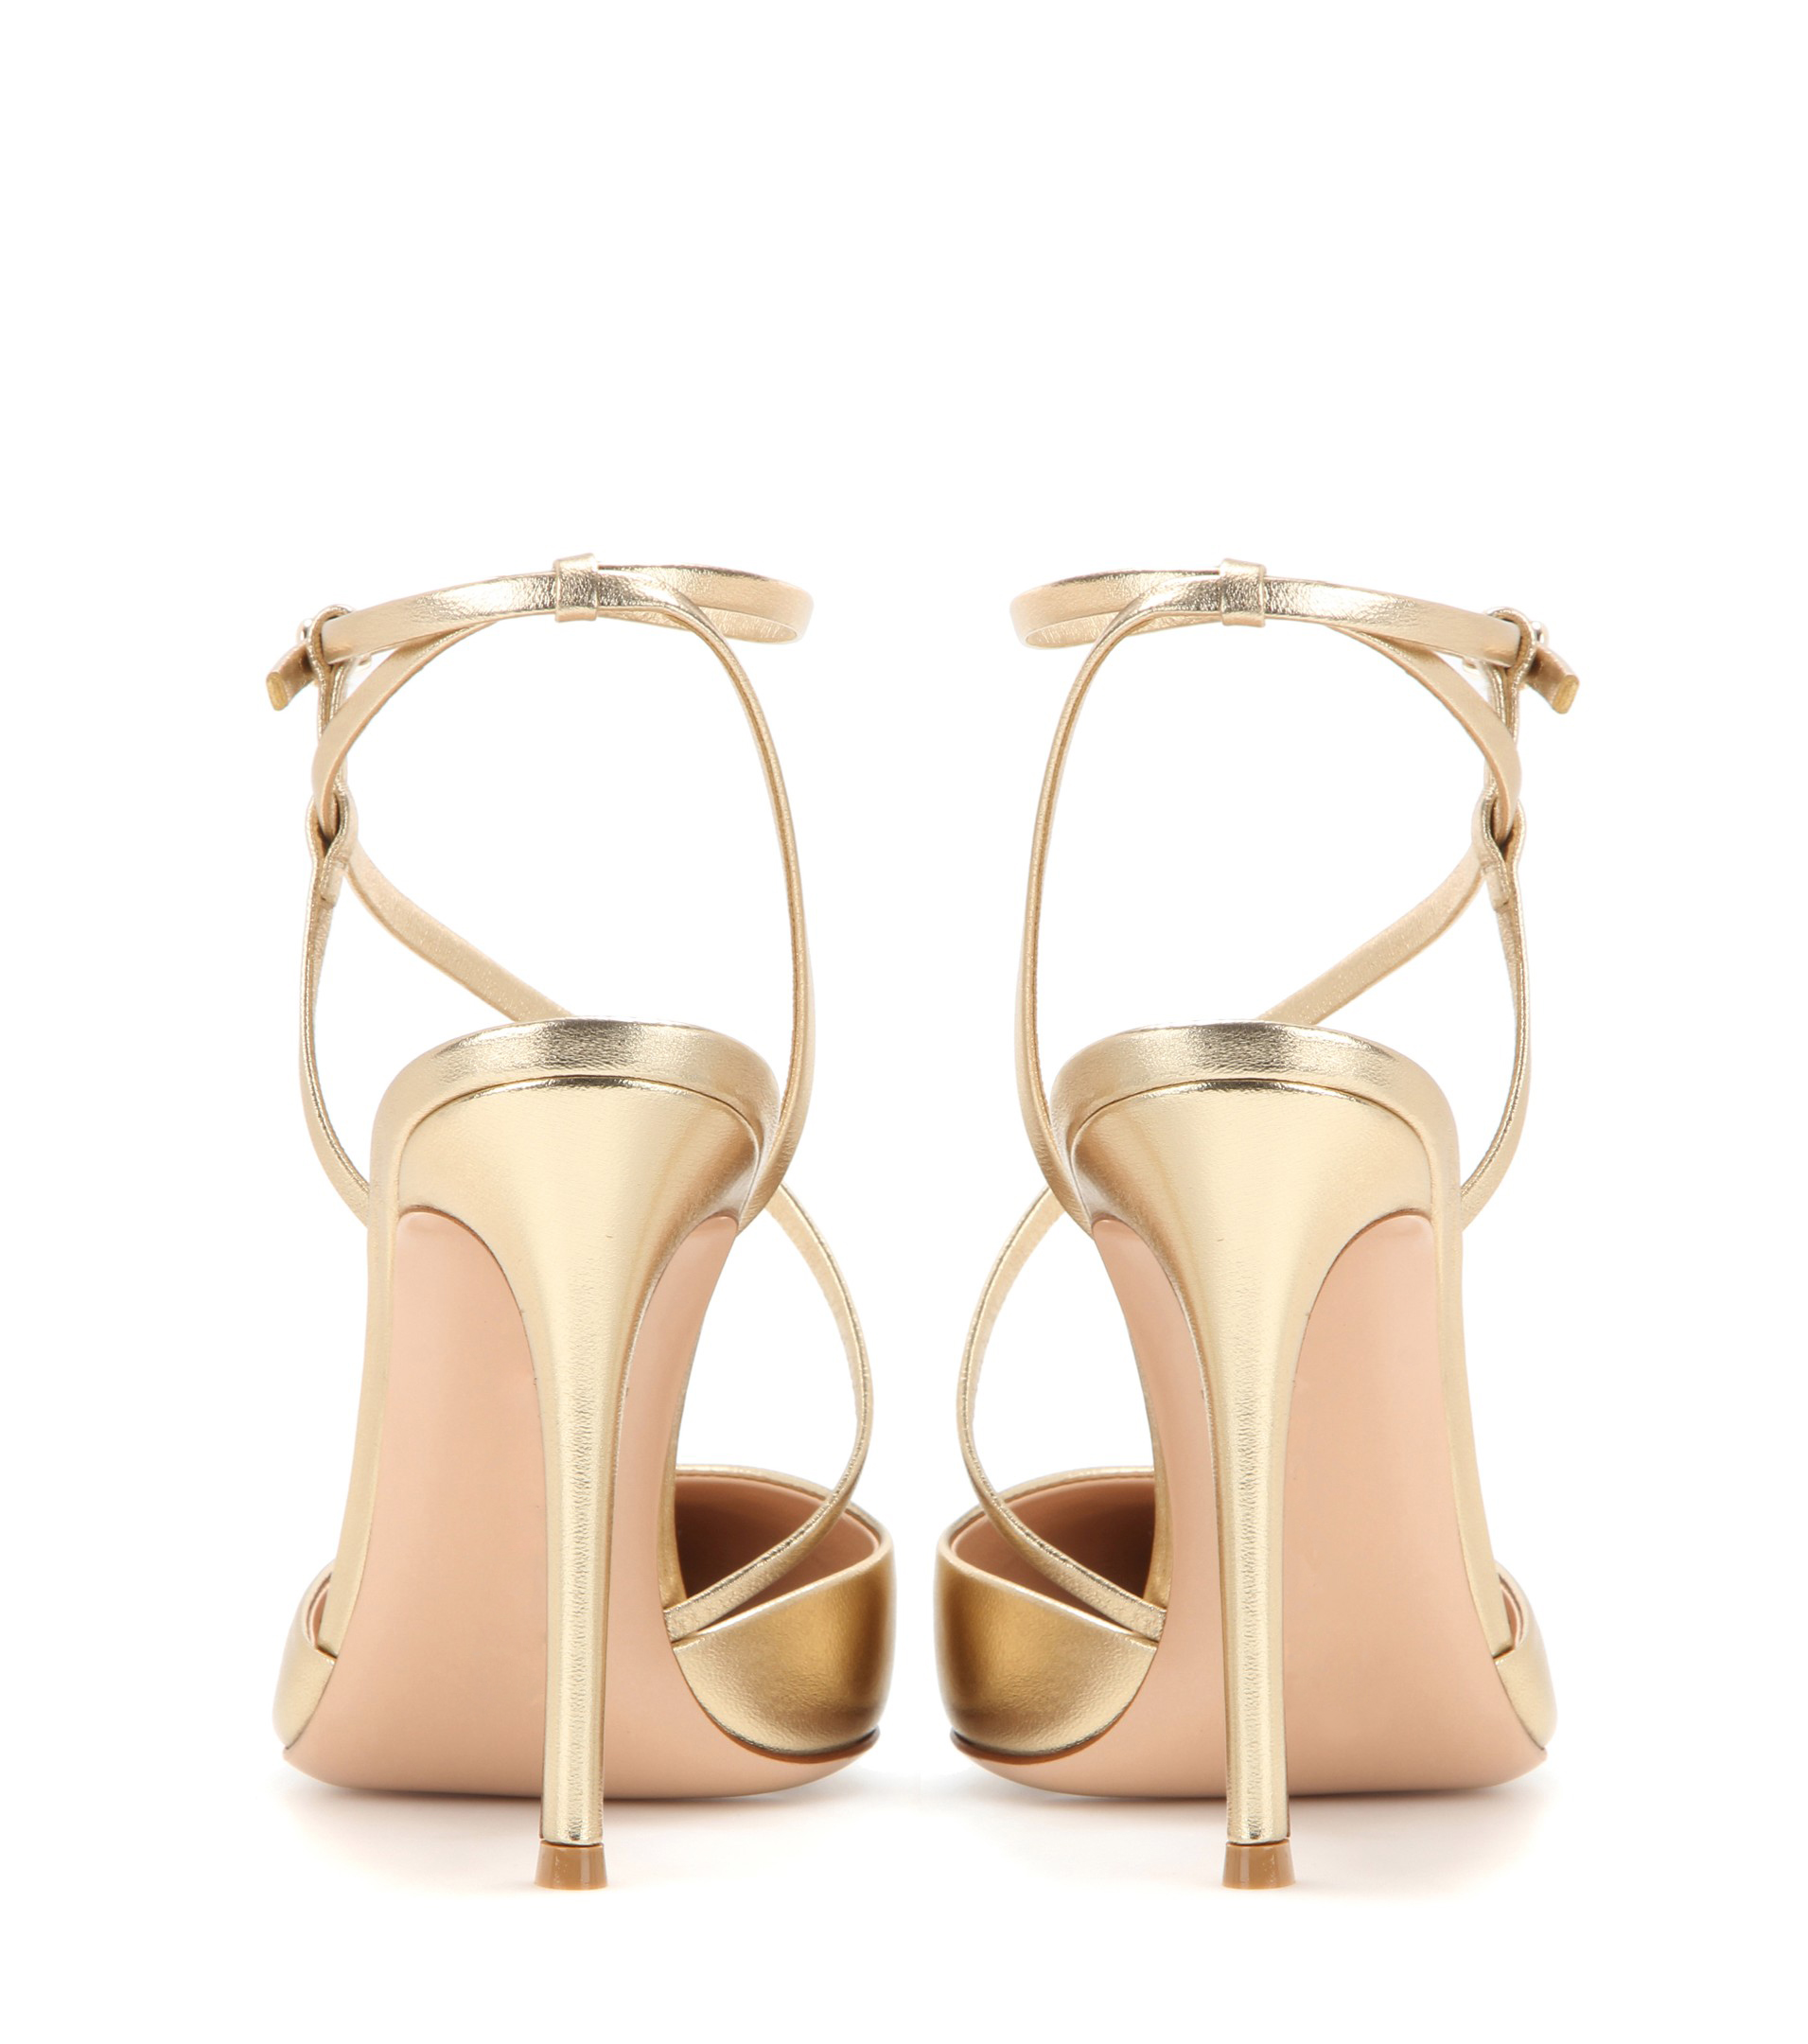 b3307ceed07a Metallic gold stiletto girls high heels fashion high quality slingback  pointed toe ladies shoes